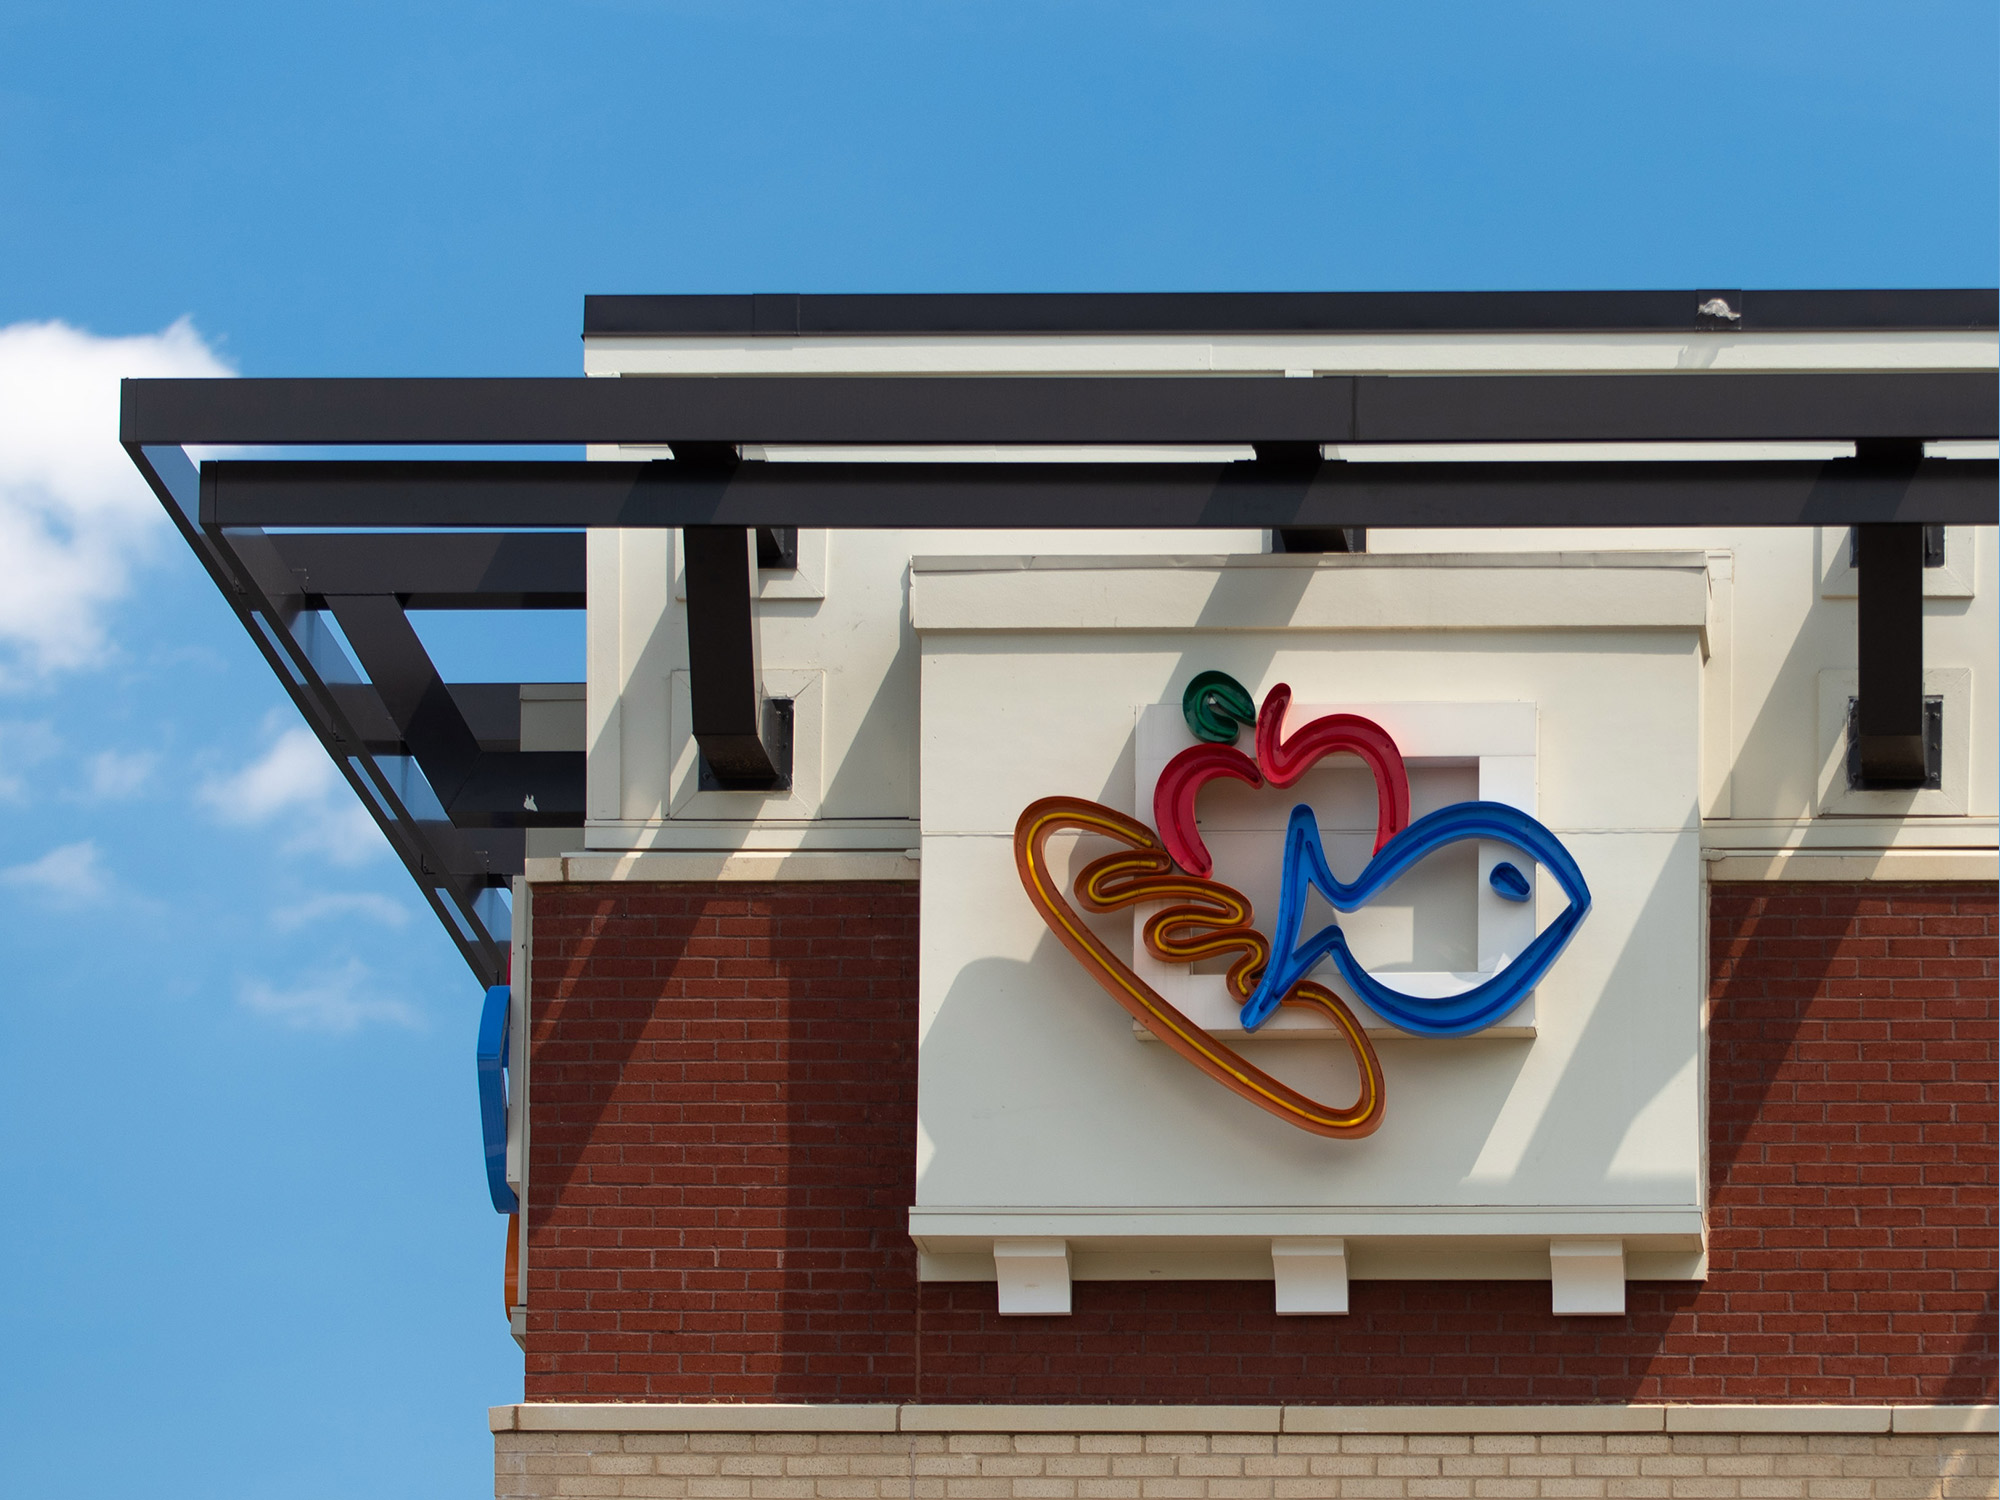 Decorative architectural element on a grocery store.